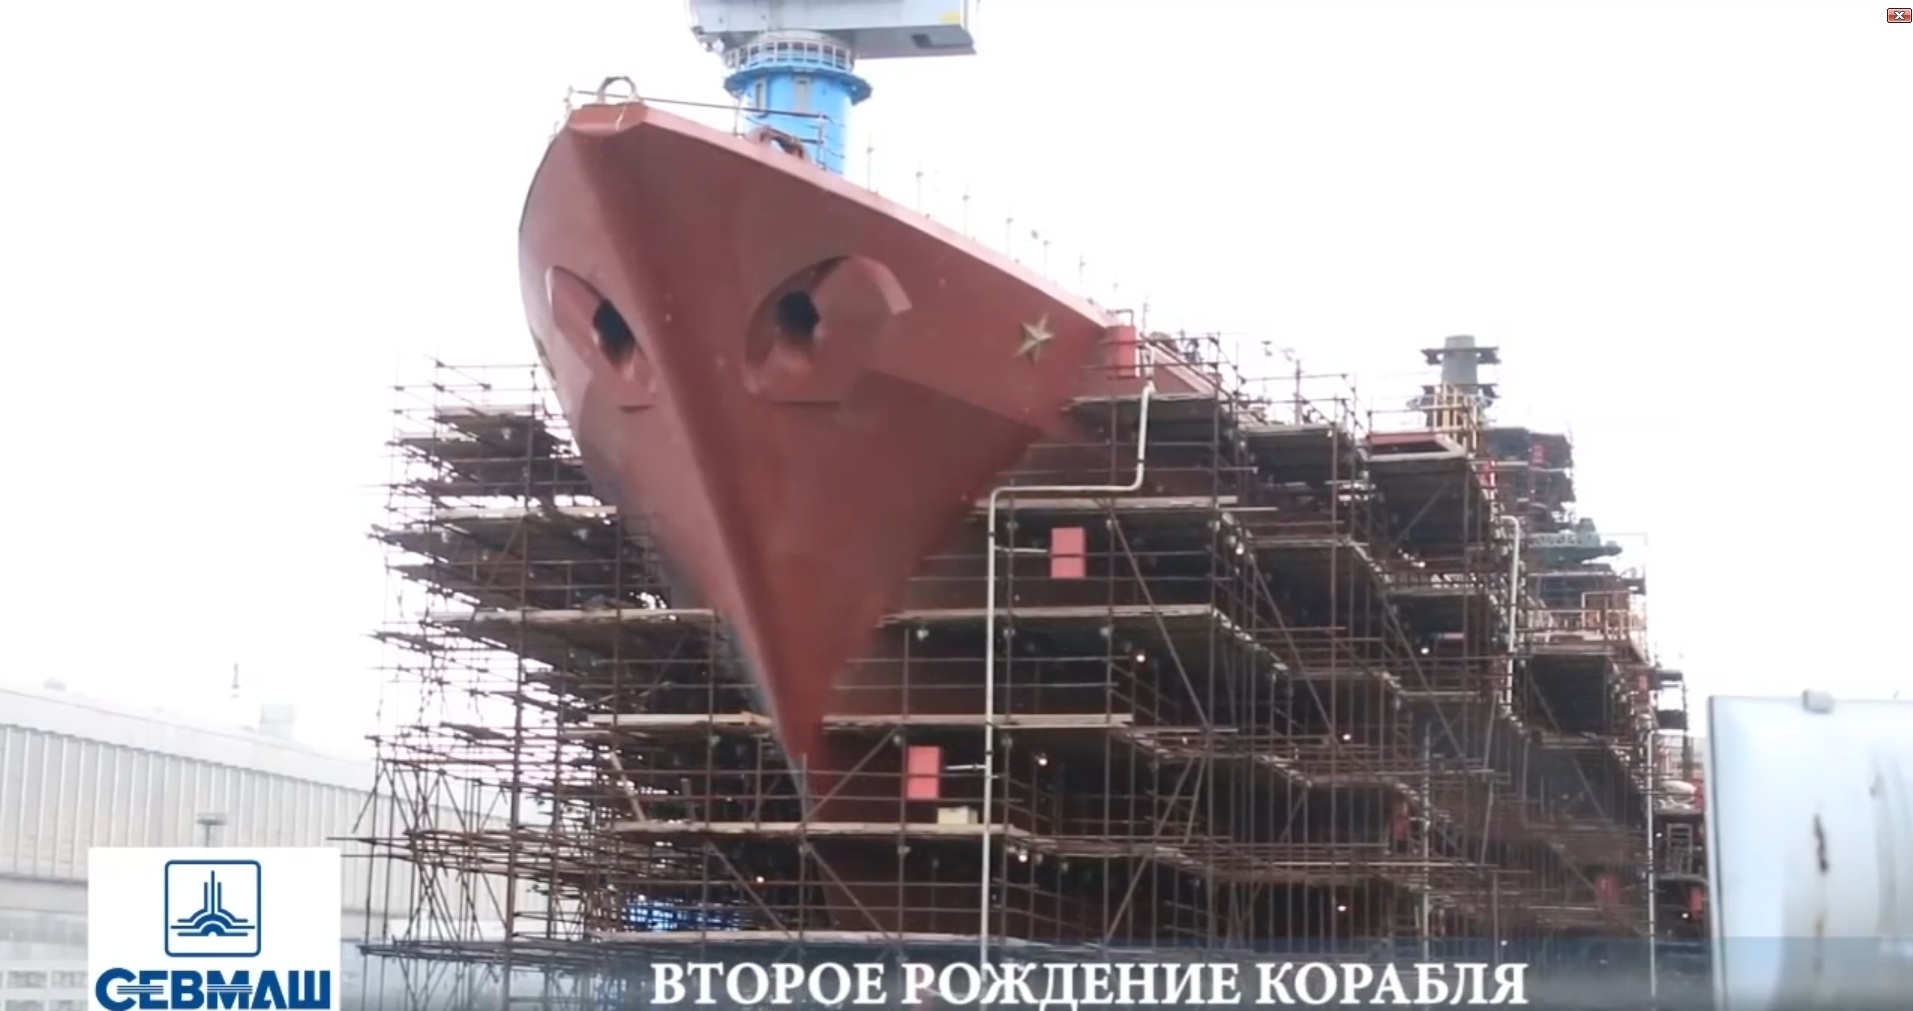 Upgraded Kirov class: Project 11442 [Admiral Nakhimov] - Page 13 1144hjh